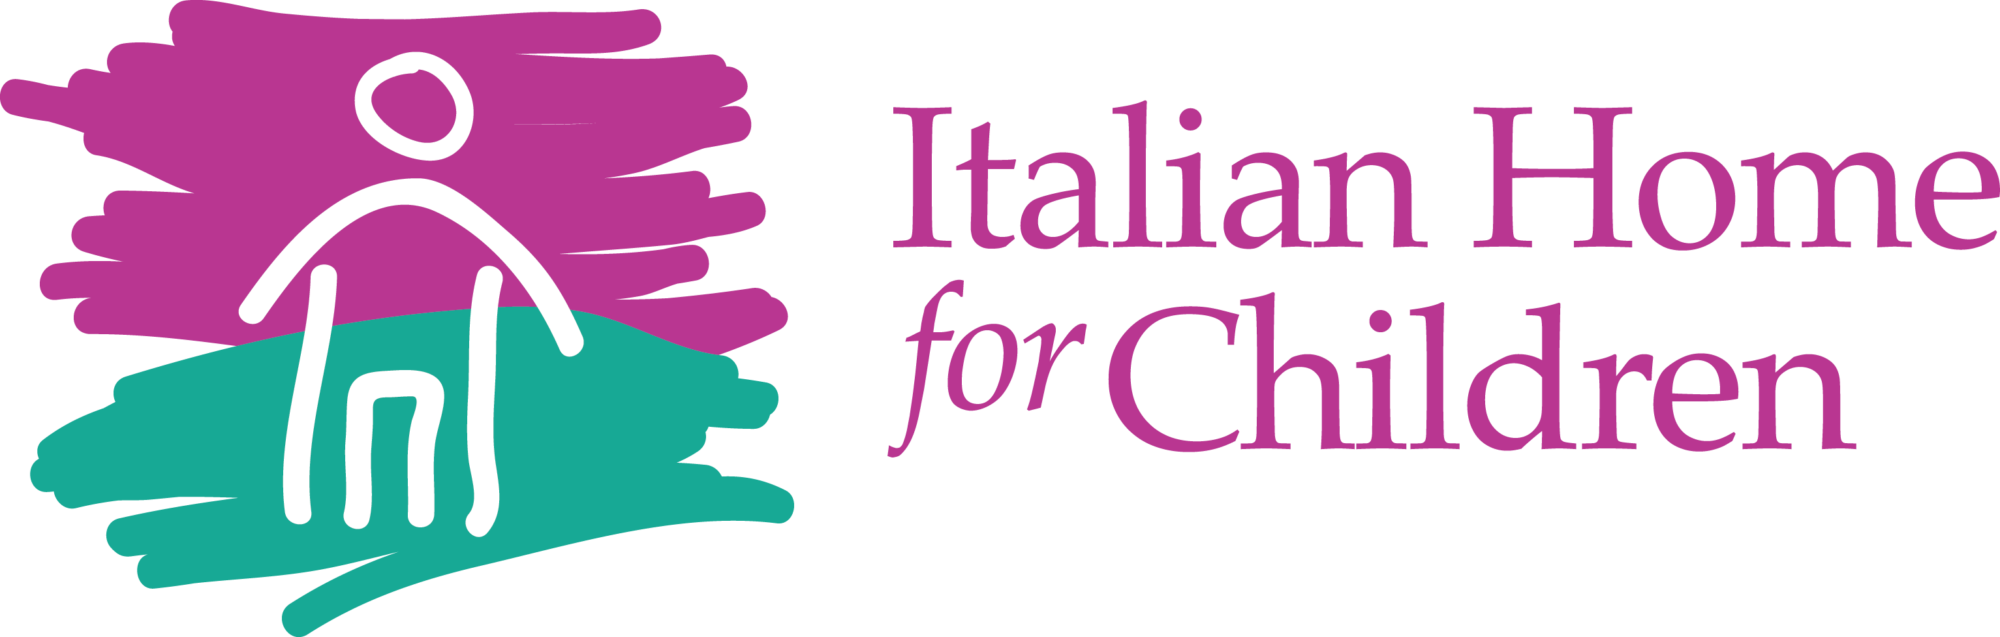 Italian Home For Children logo